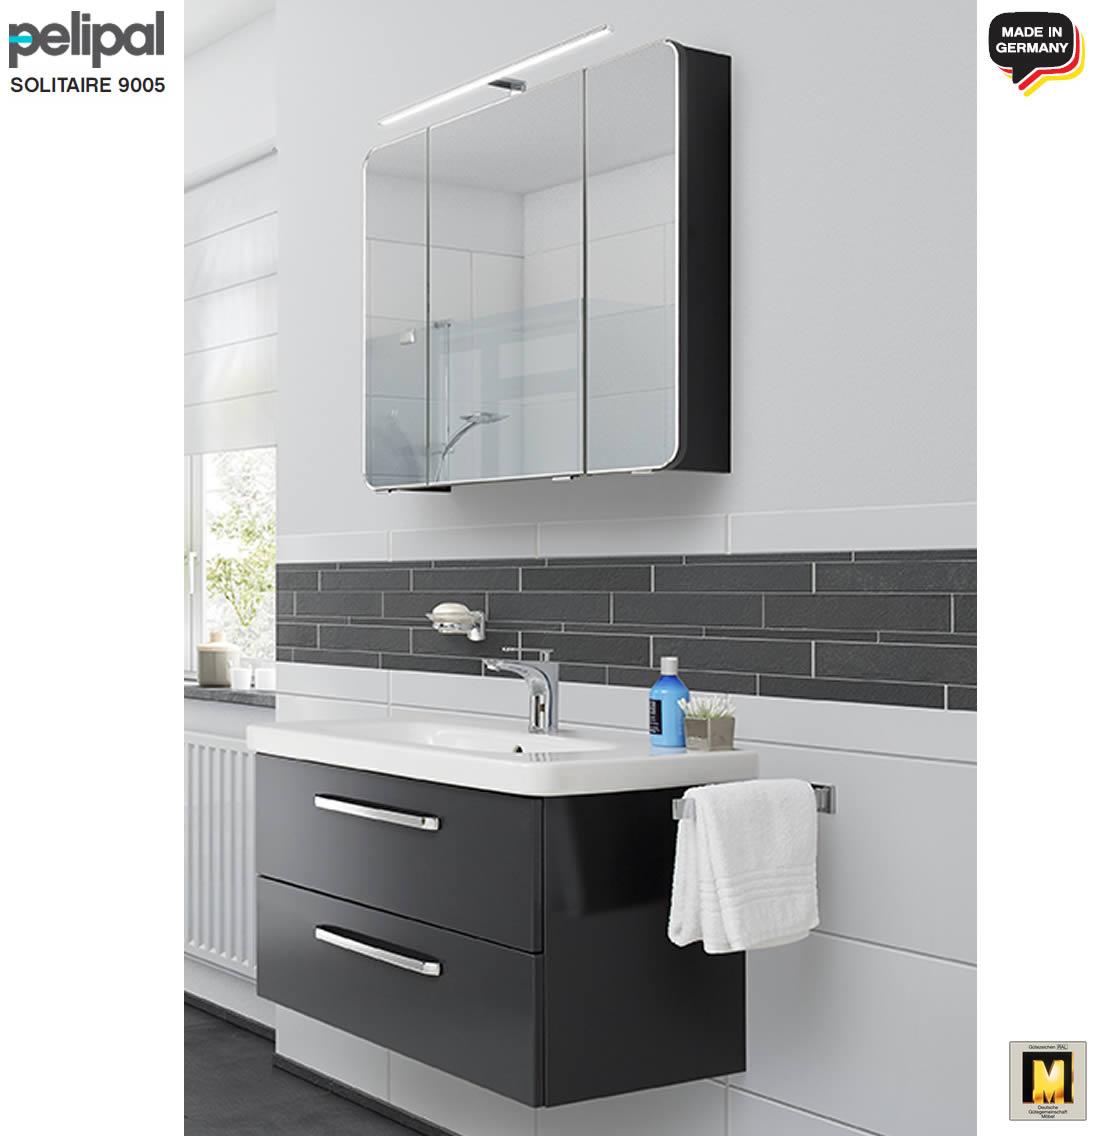 pelipal solitaire 9005 badm bel set 80 cm mit spiegelschrank inkl led aufsatzleuchte duravit. Black Bedroom Furniture Sets. Home Design Ideas